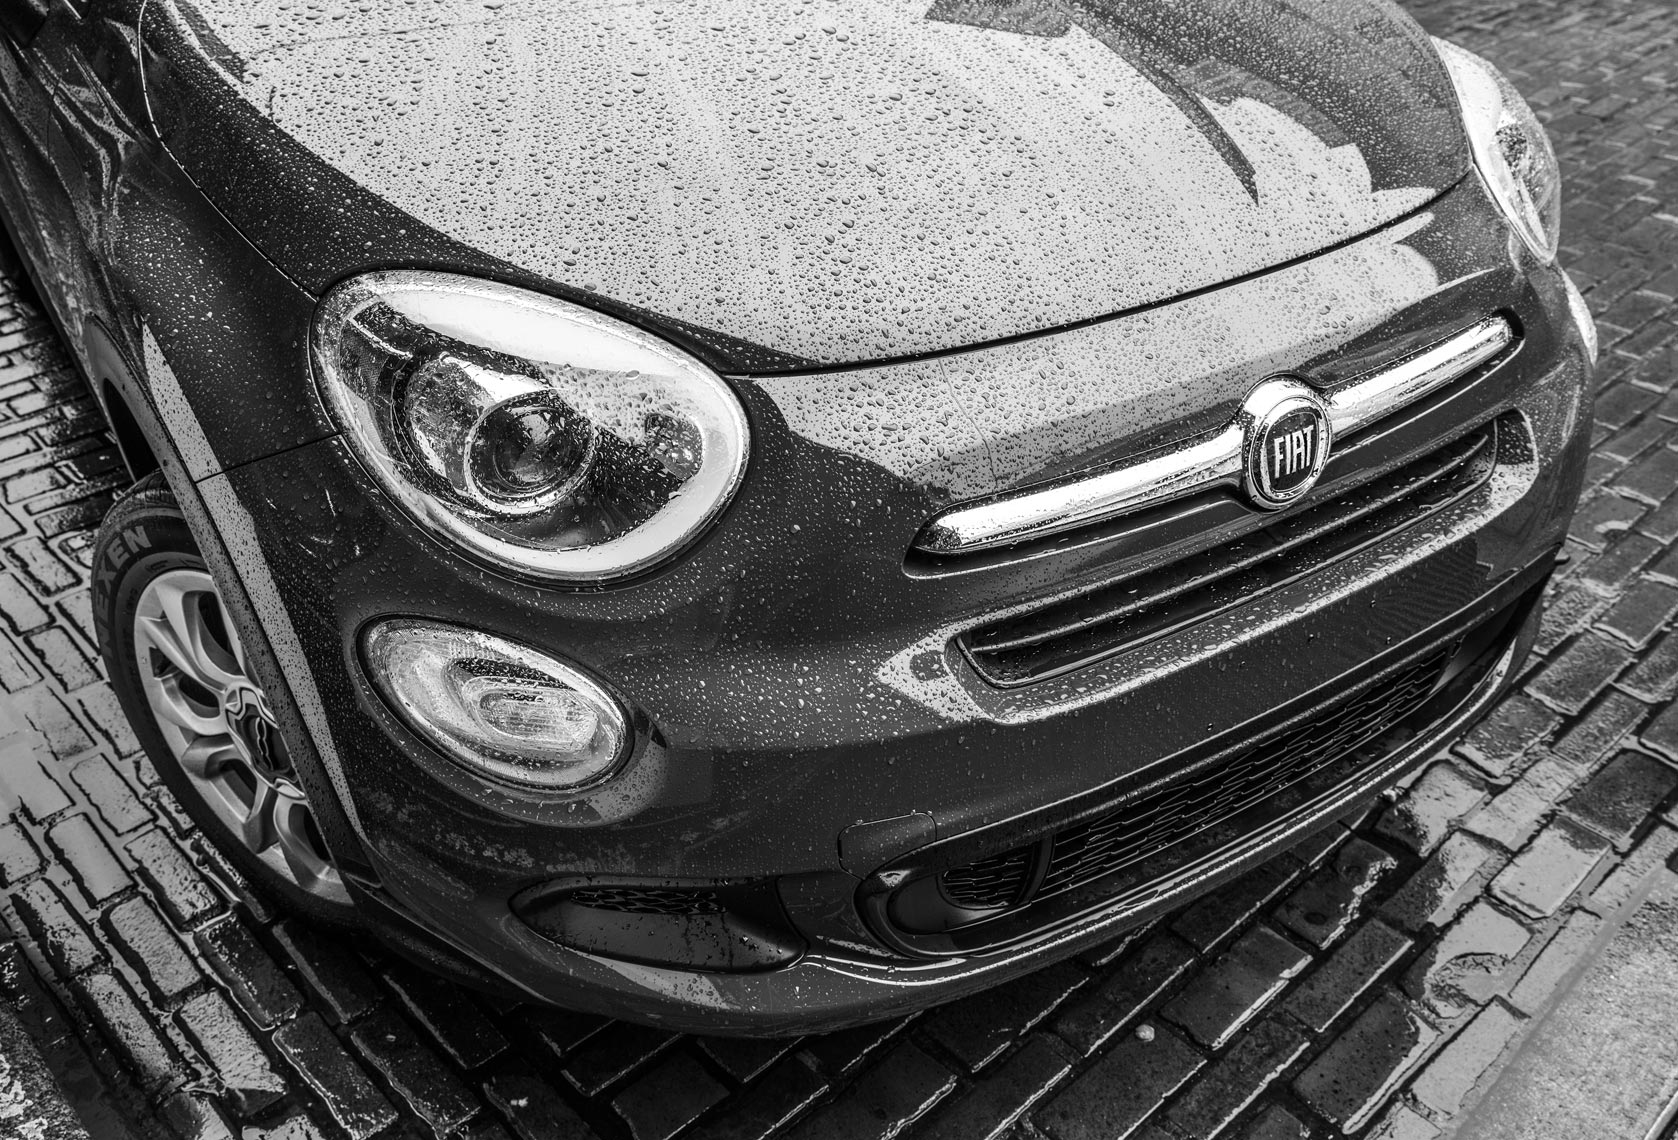 Christopher Nelson Photography|Fiat 500x|Seattle|PikePlaceMarket|B&W